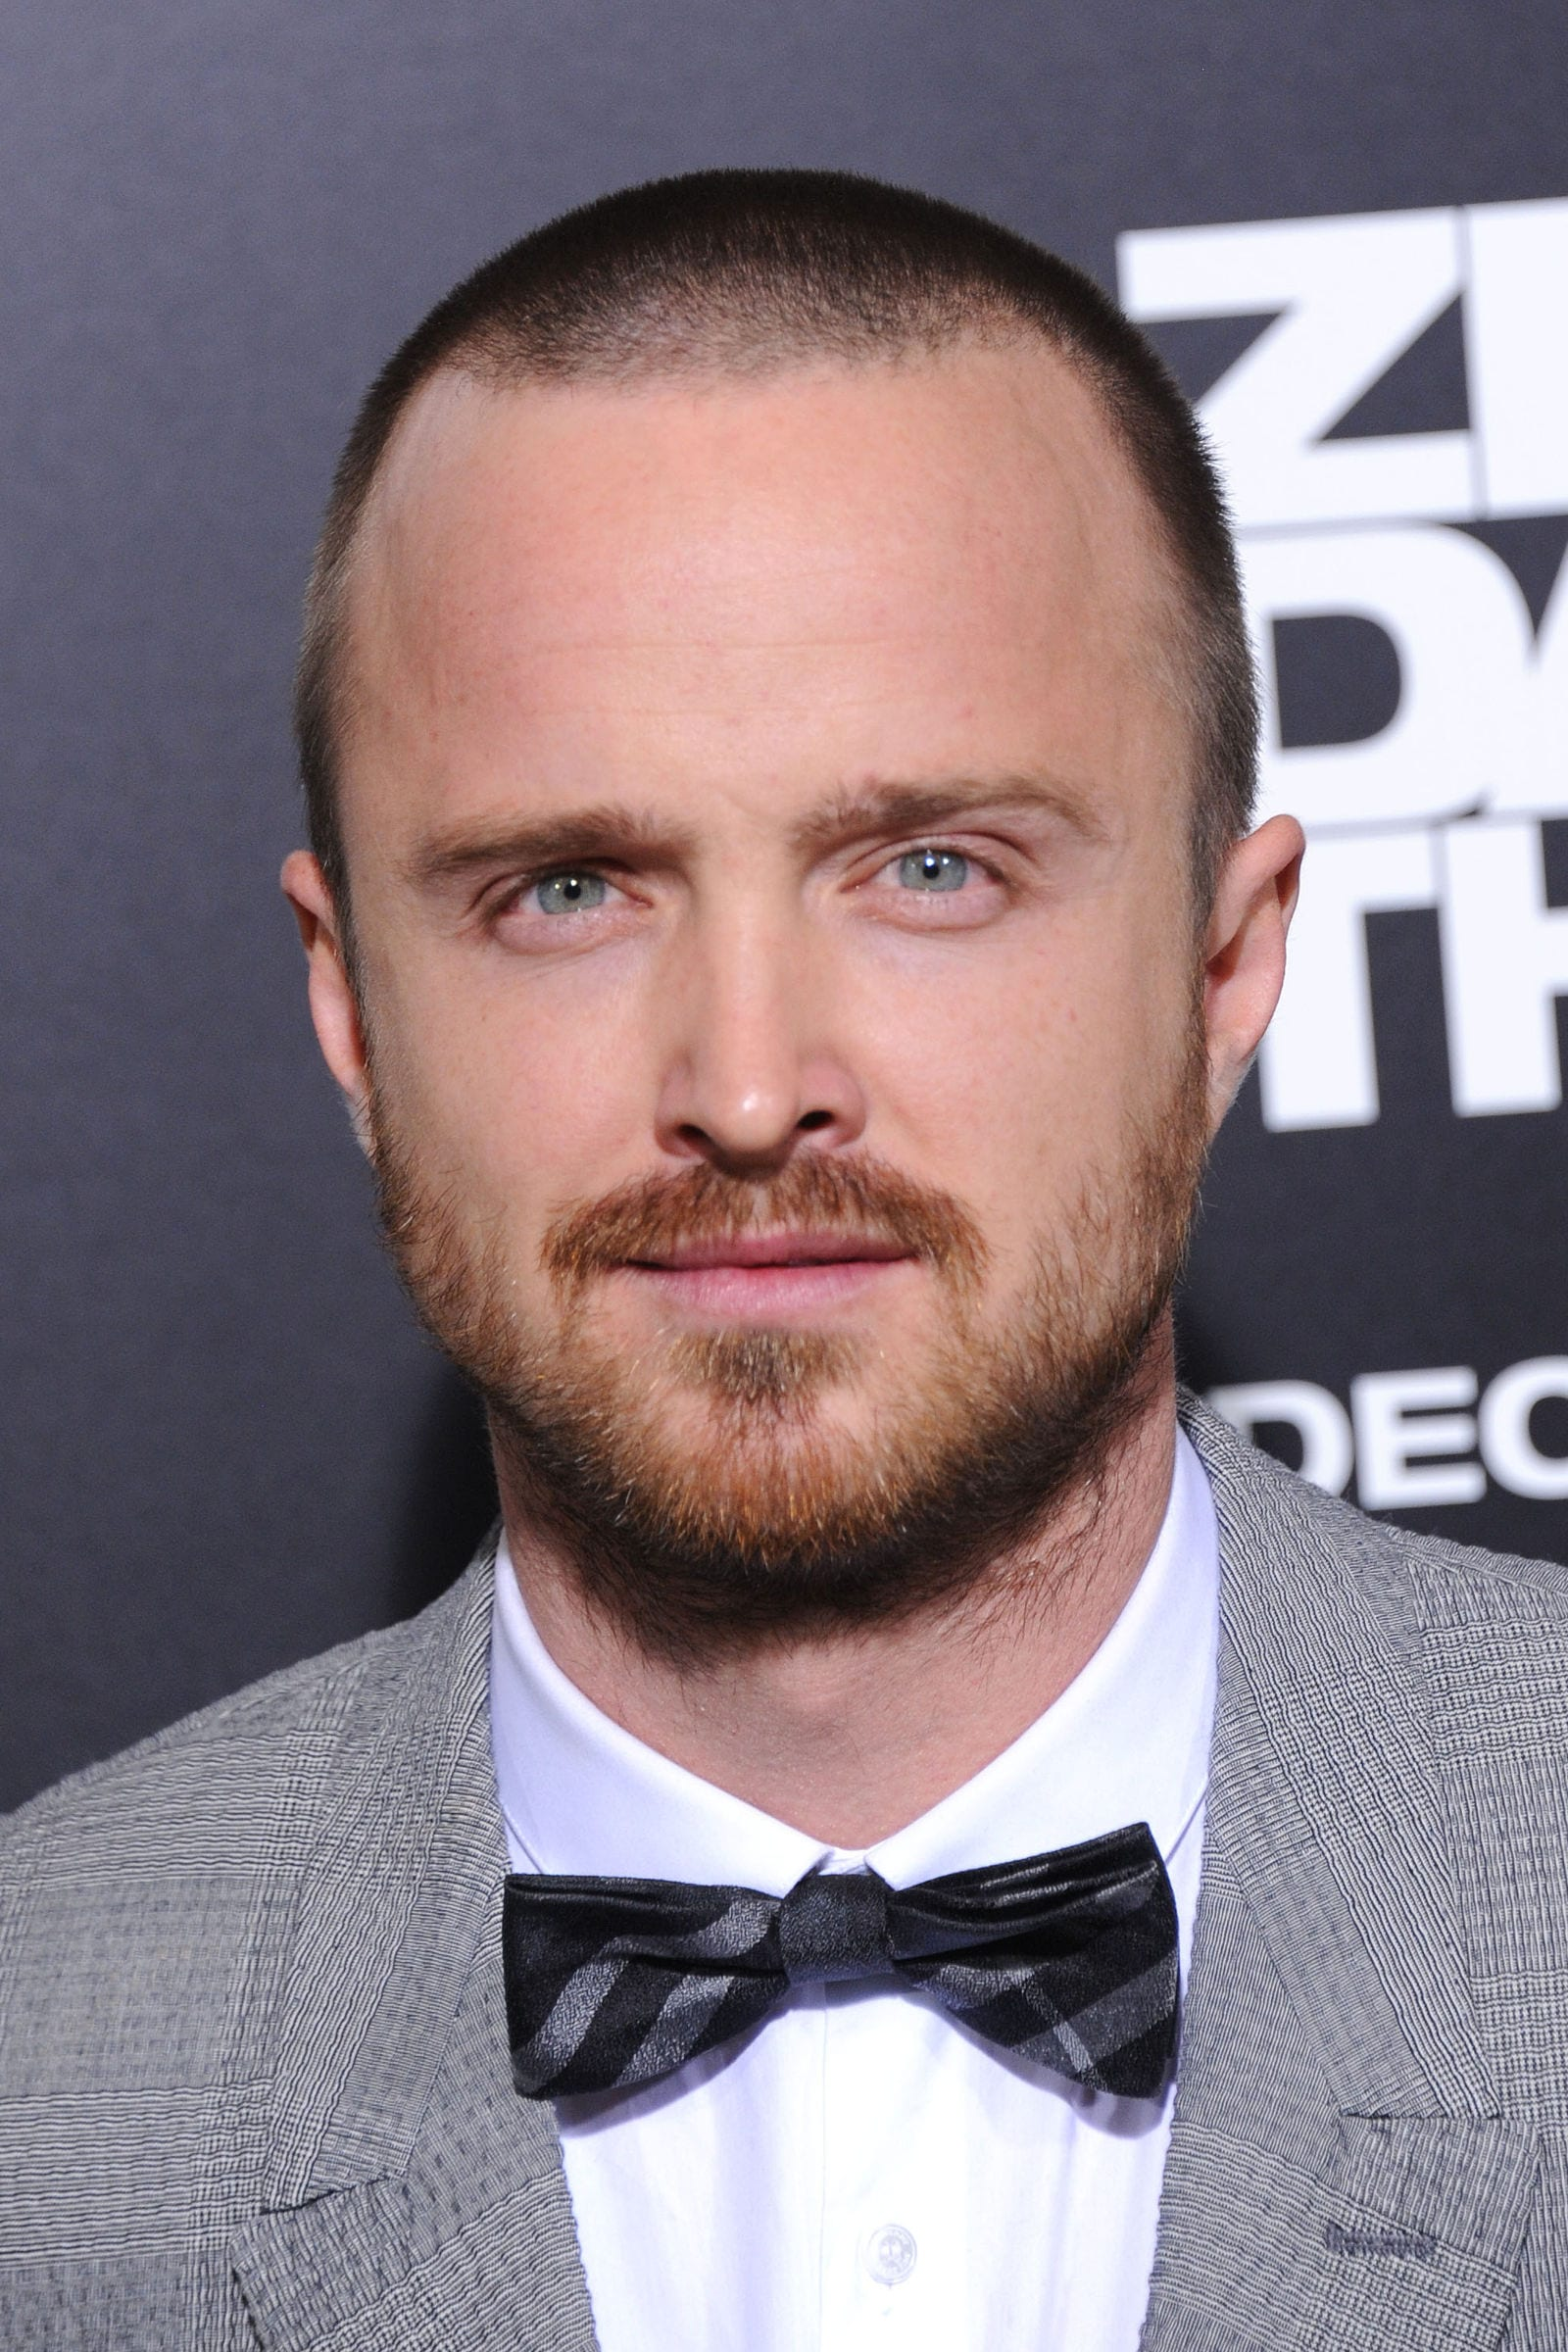 Aaron Paul buzz cut by DFree